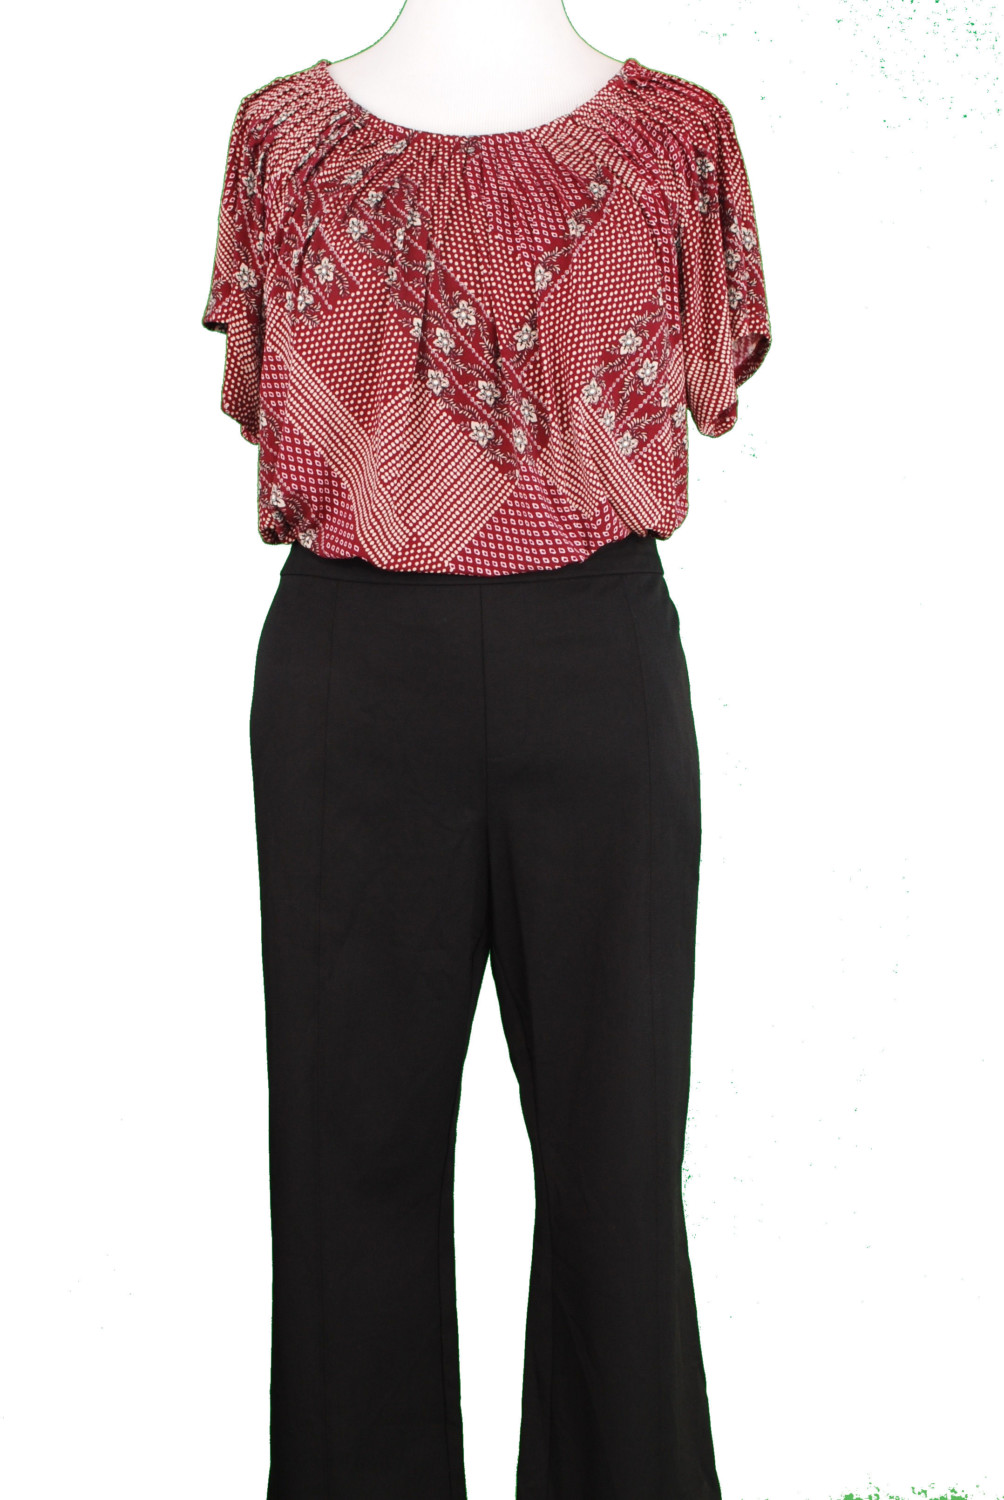 Style & Co Top, INC Pants – Original Retail: $89, CWS: $20